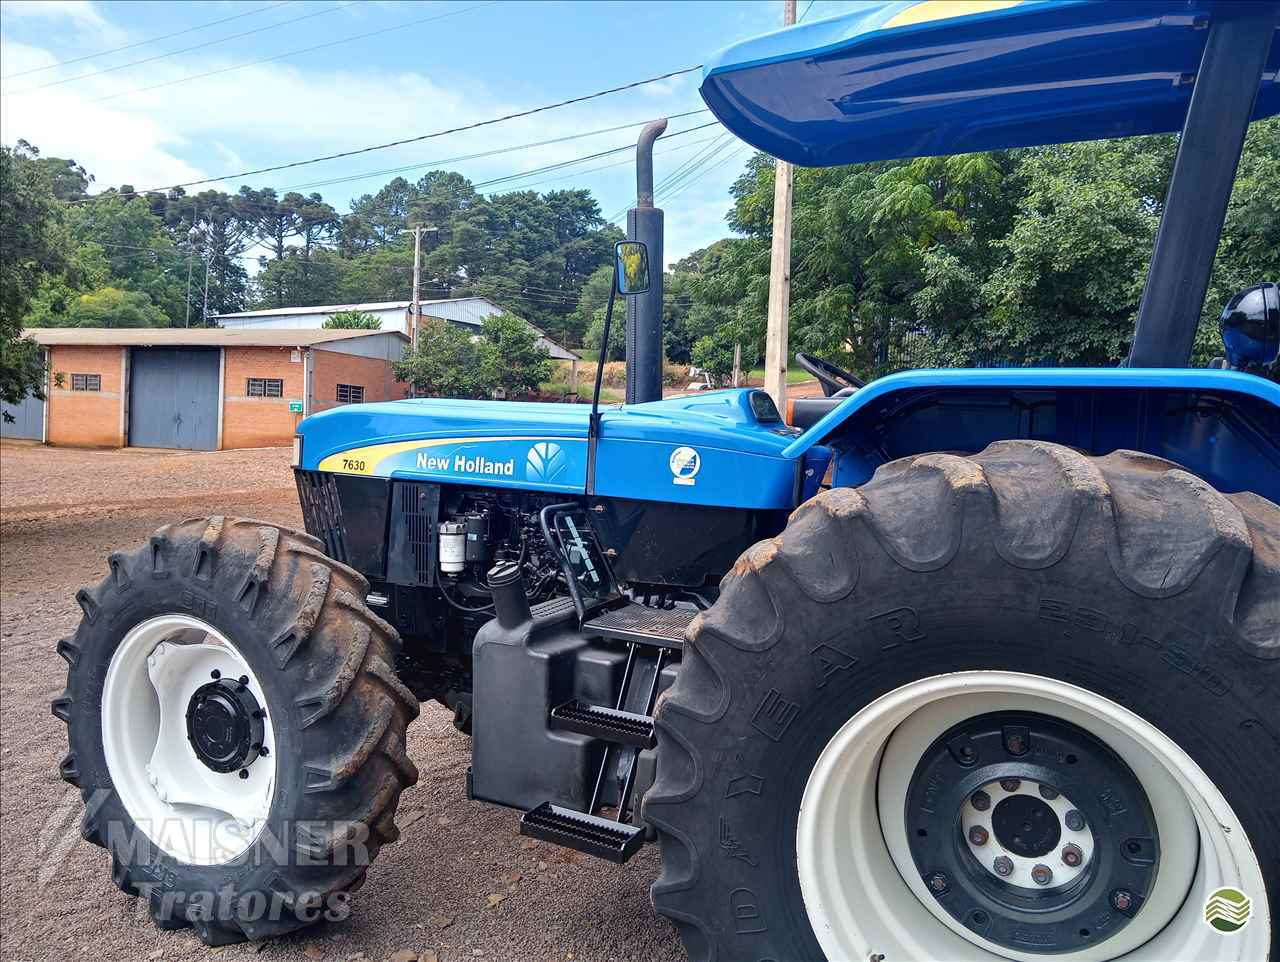 NEW HOLLAND NEW 7630  2011/2011 Maisner Tratores